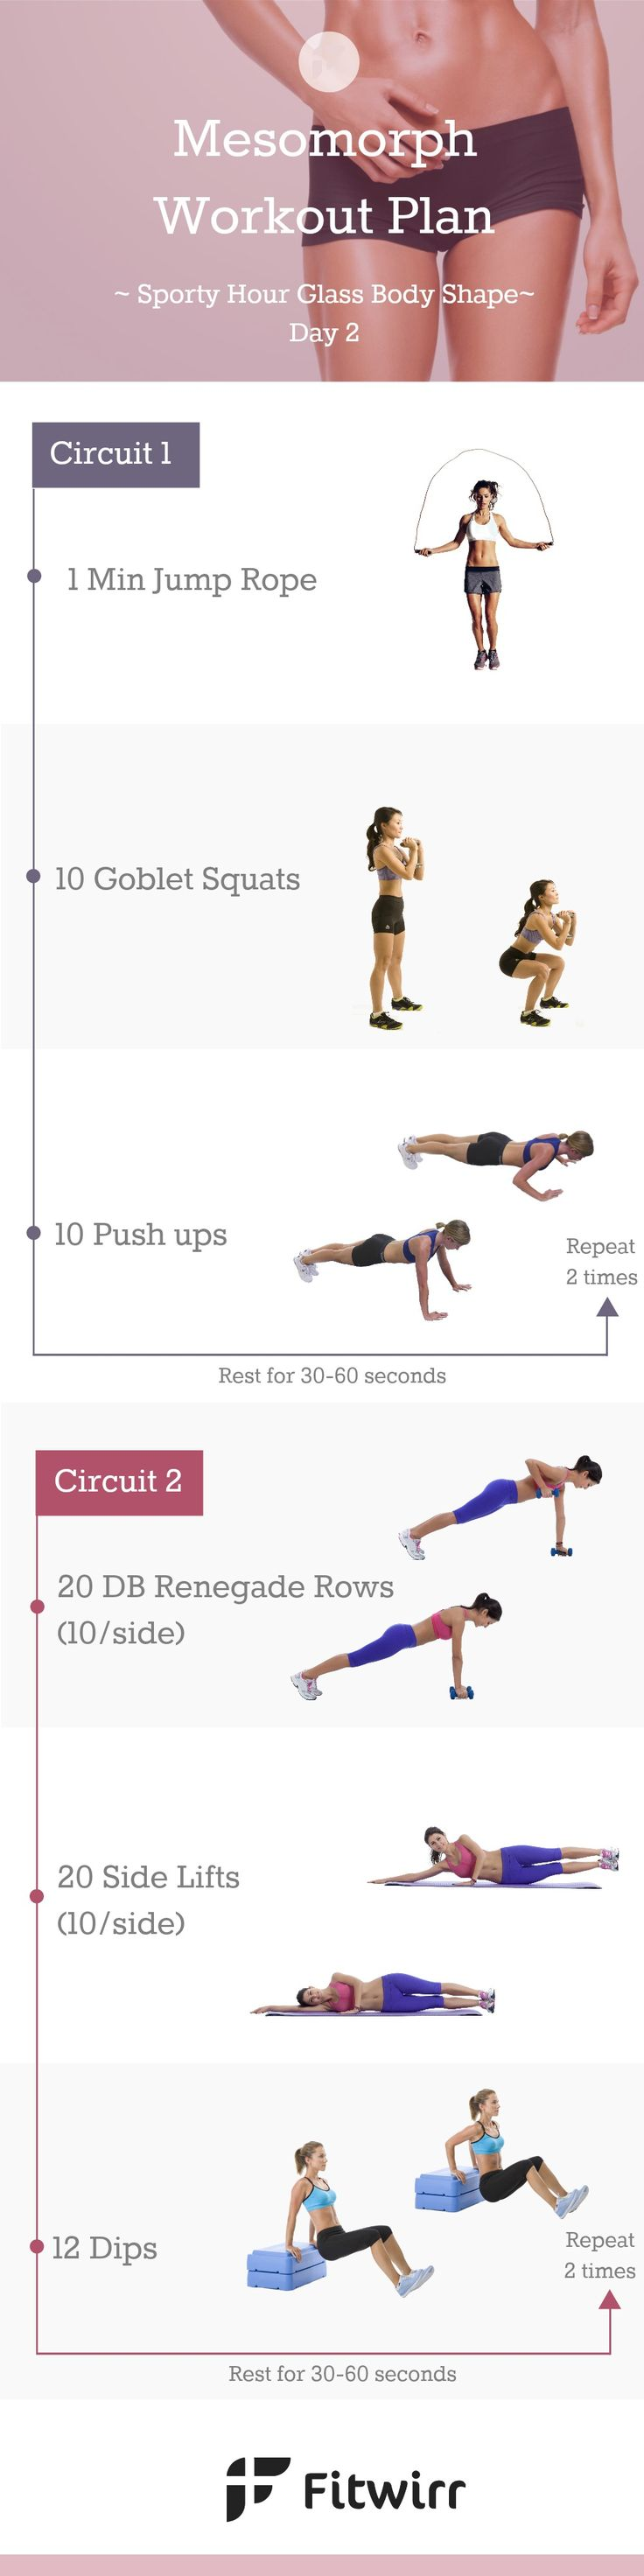 Mesomorph Workout Routine - Day 2: Sure, there are general workout rules that apply to all body types and certain exercises perform better than others no matter who performs them, but to have a successful workout that leads to weight loss, fat loss and muscle toning results, workouts that address both your problem areas and cater to your body type are crucial and create a night and day difference.